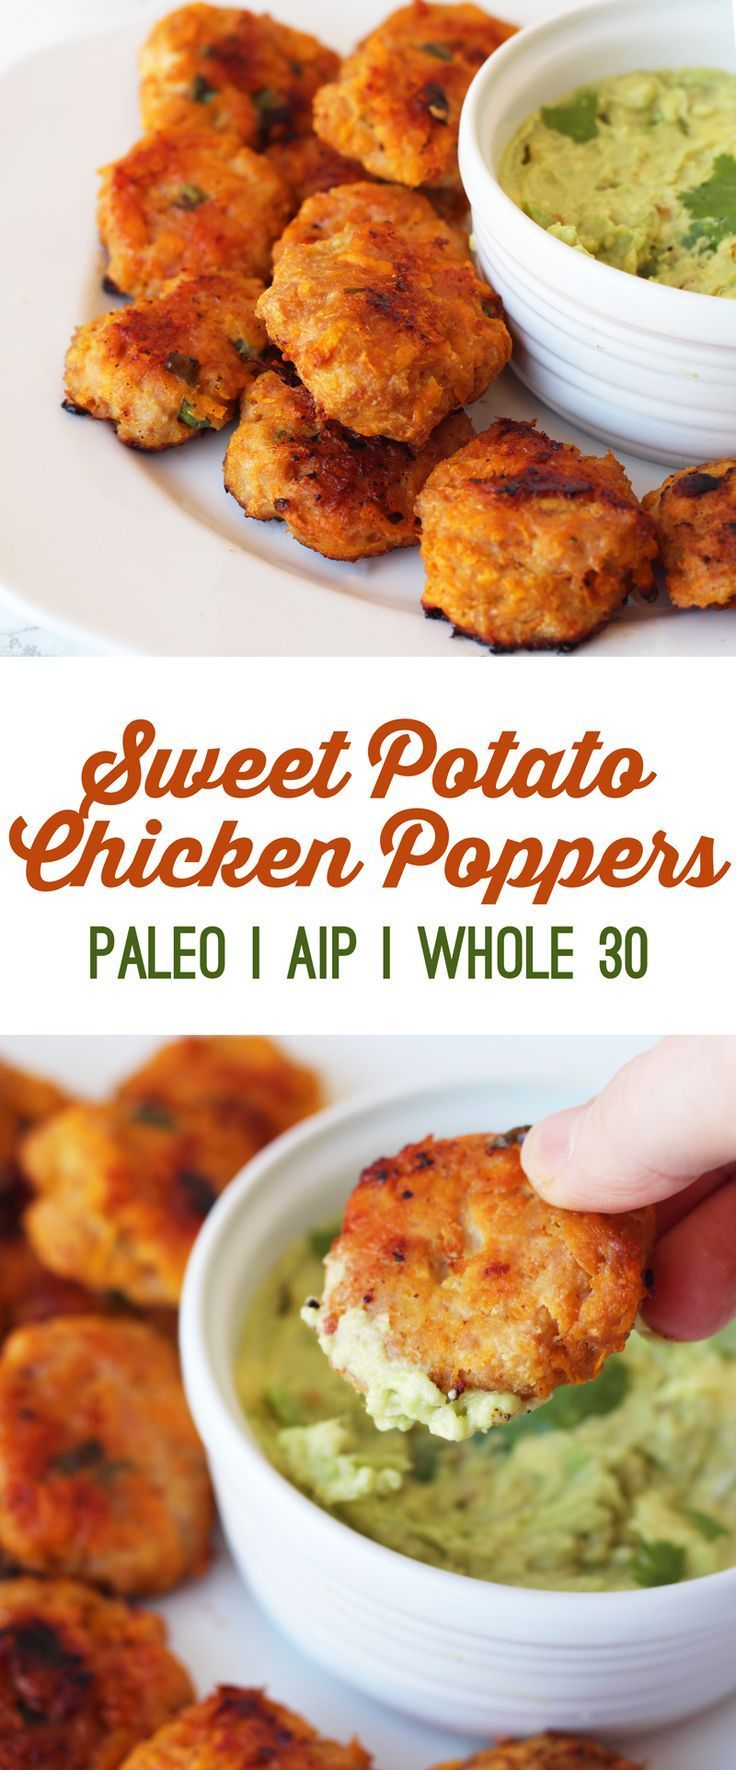 Sweet Potato Chicken Poppers (Paleo & AIP)   – Appetizers + Sides